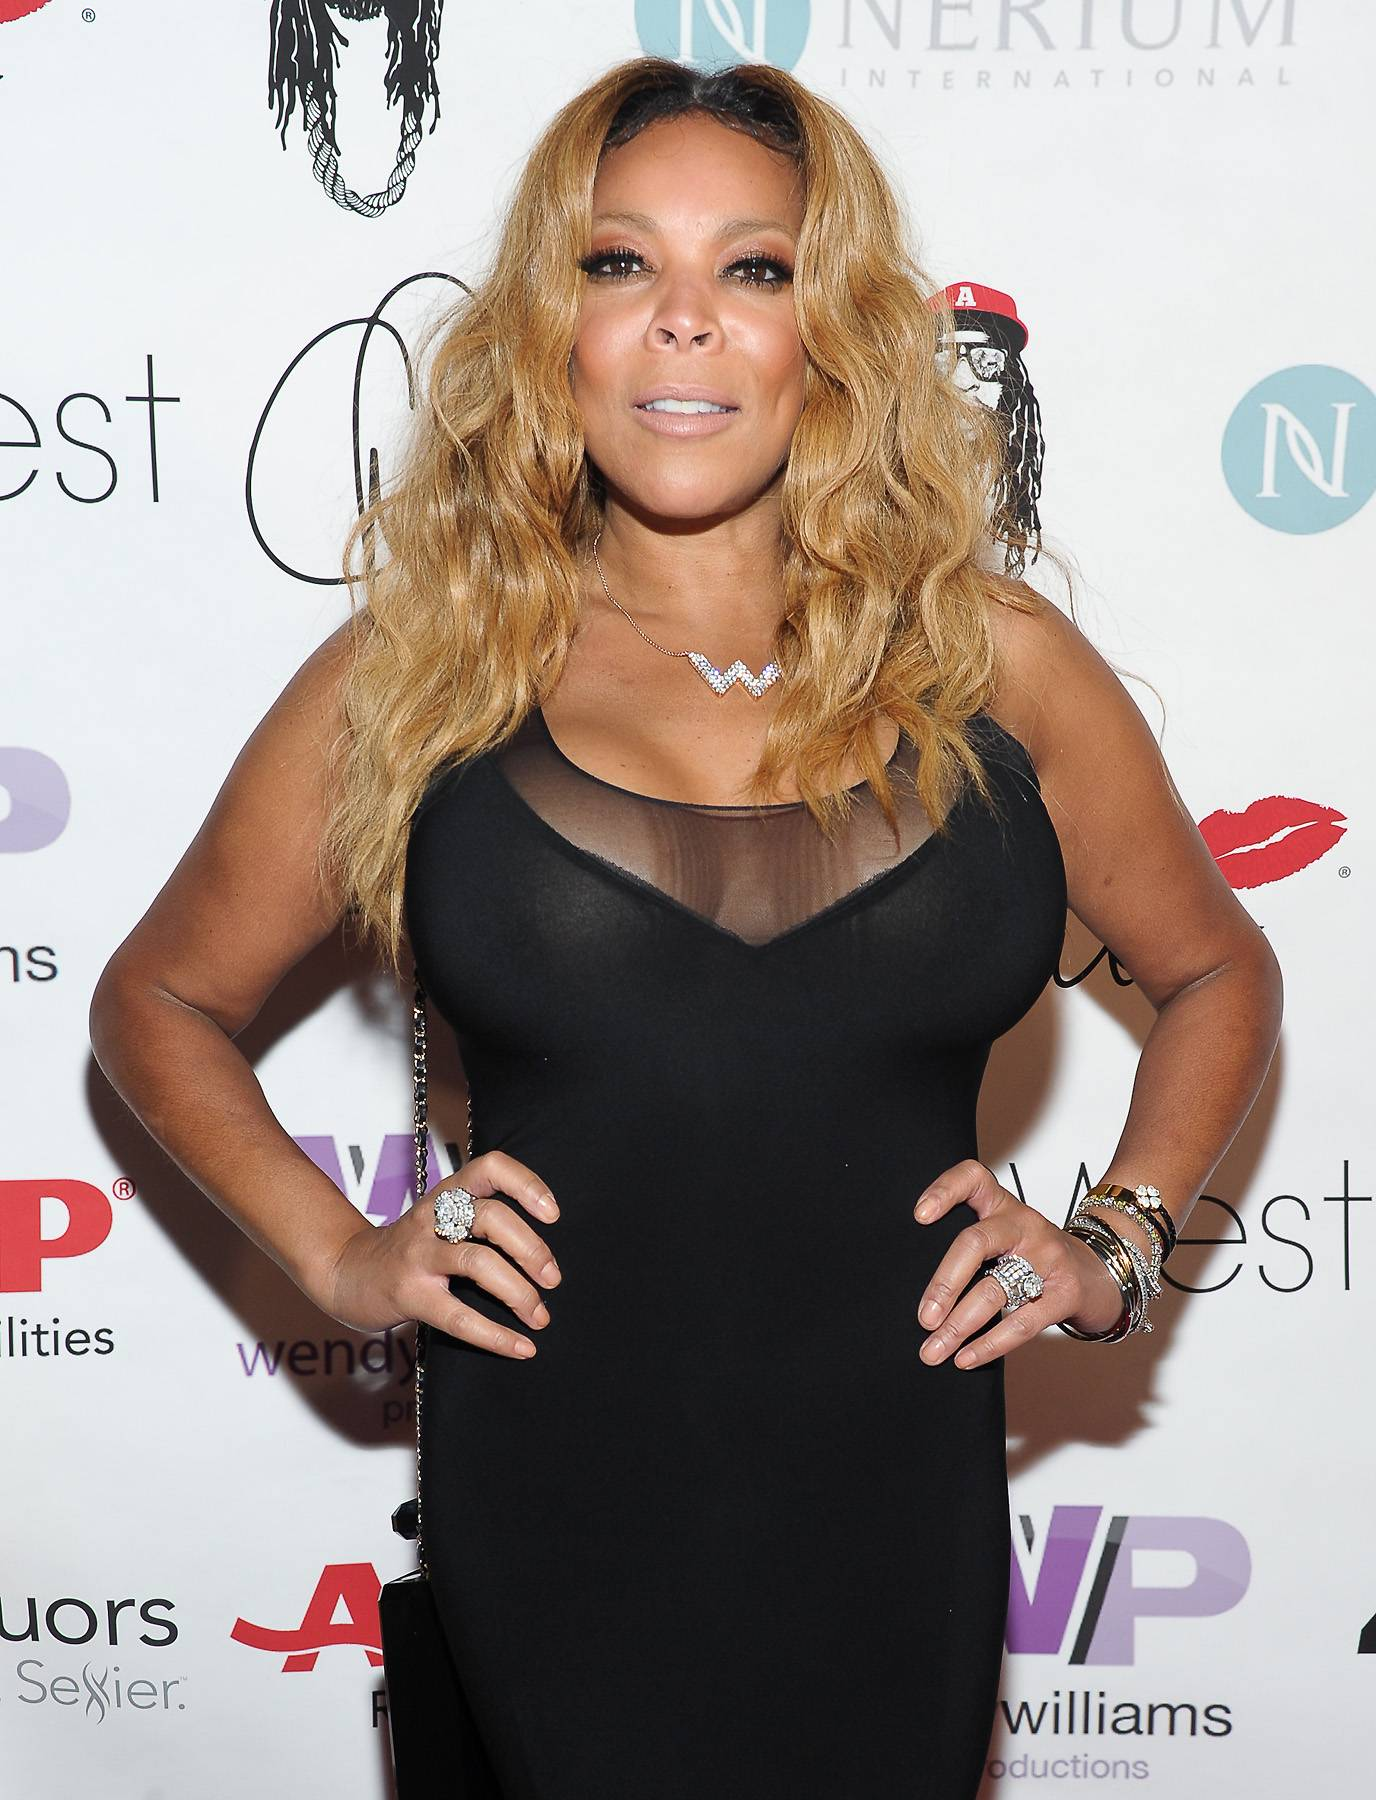 /content/dam/betcom/images/2014/07/Celeb-07-15-07-31/072914-celebs-klaws-out-wendy-williams.jpg